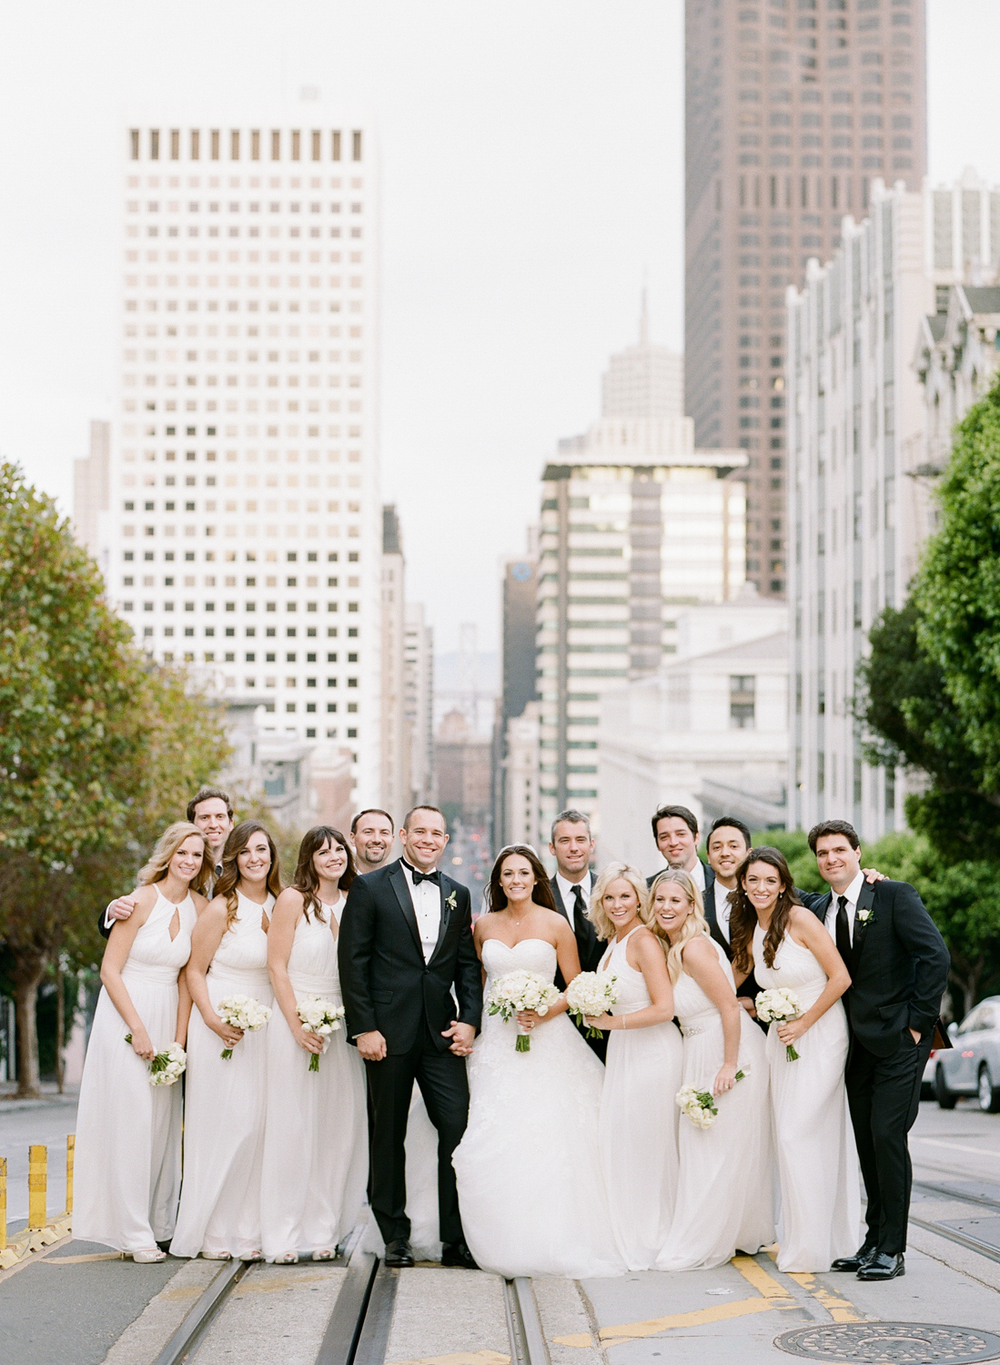 Meg, Ben, and their bridal party pose in the middle of a San Francisco street (on streetcar tracks, no less); photo by Sylvie Gil